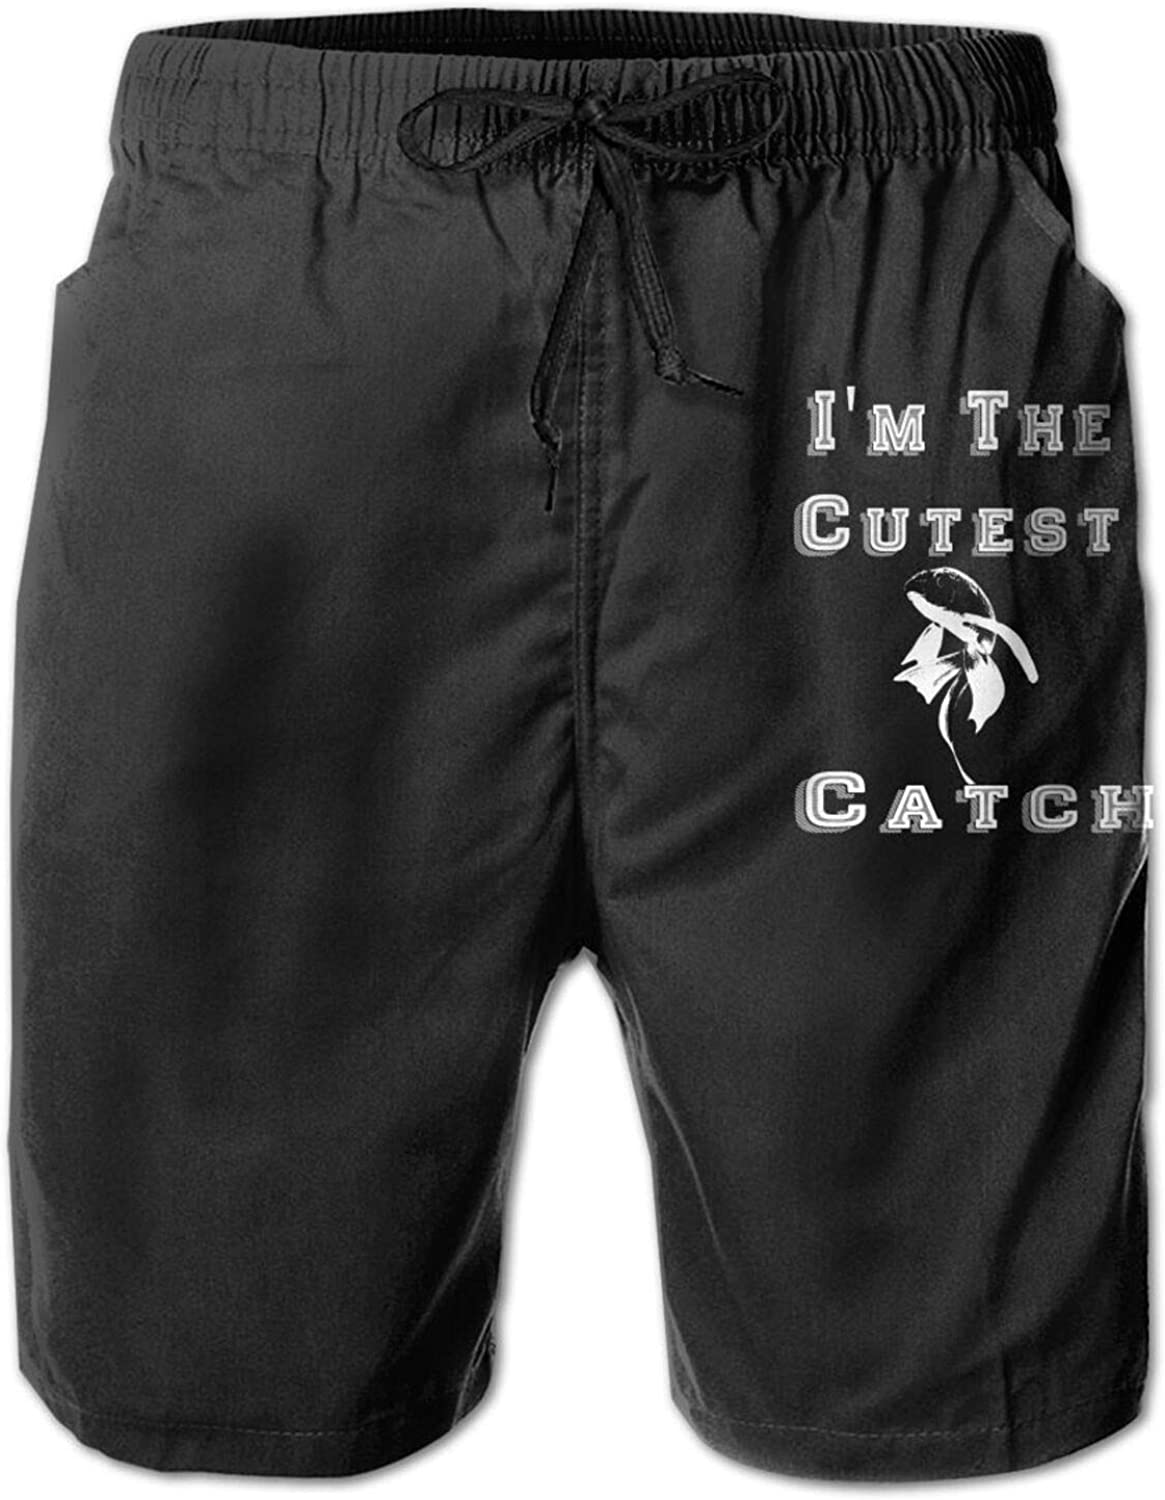 N A I'm The Cutest Catch Quick-Drying Lig Men's Swim Trunks 3D Free shipping 40% OFF Cheap Sale